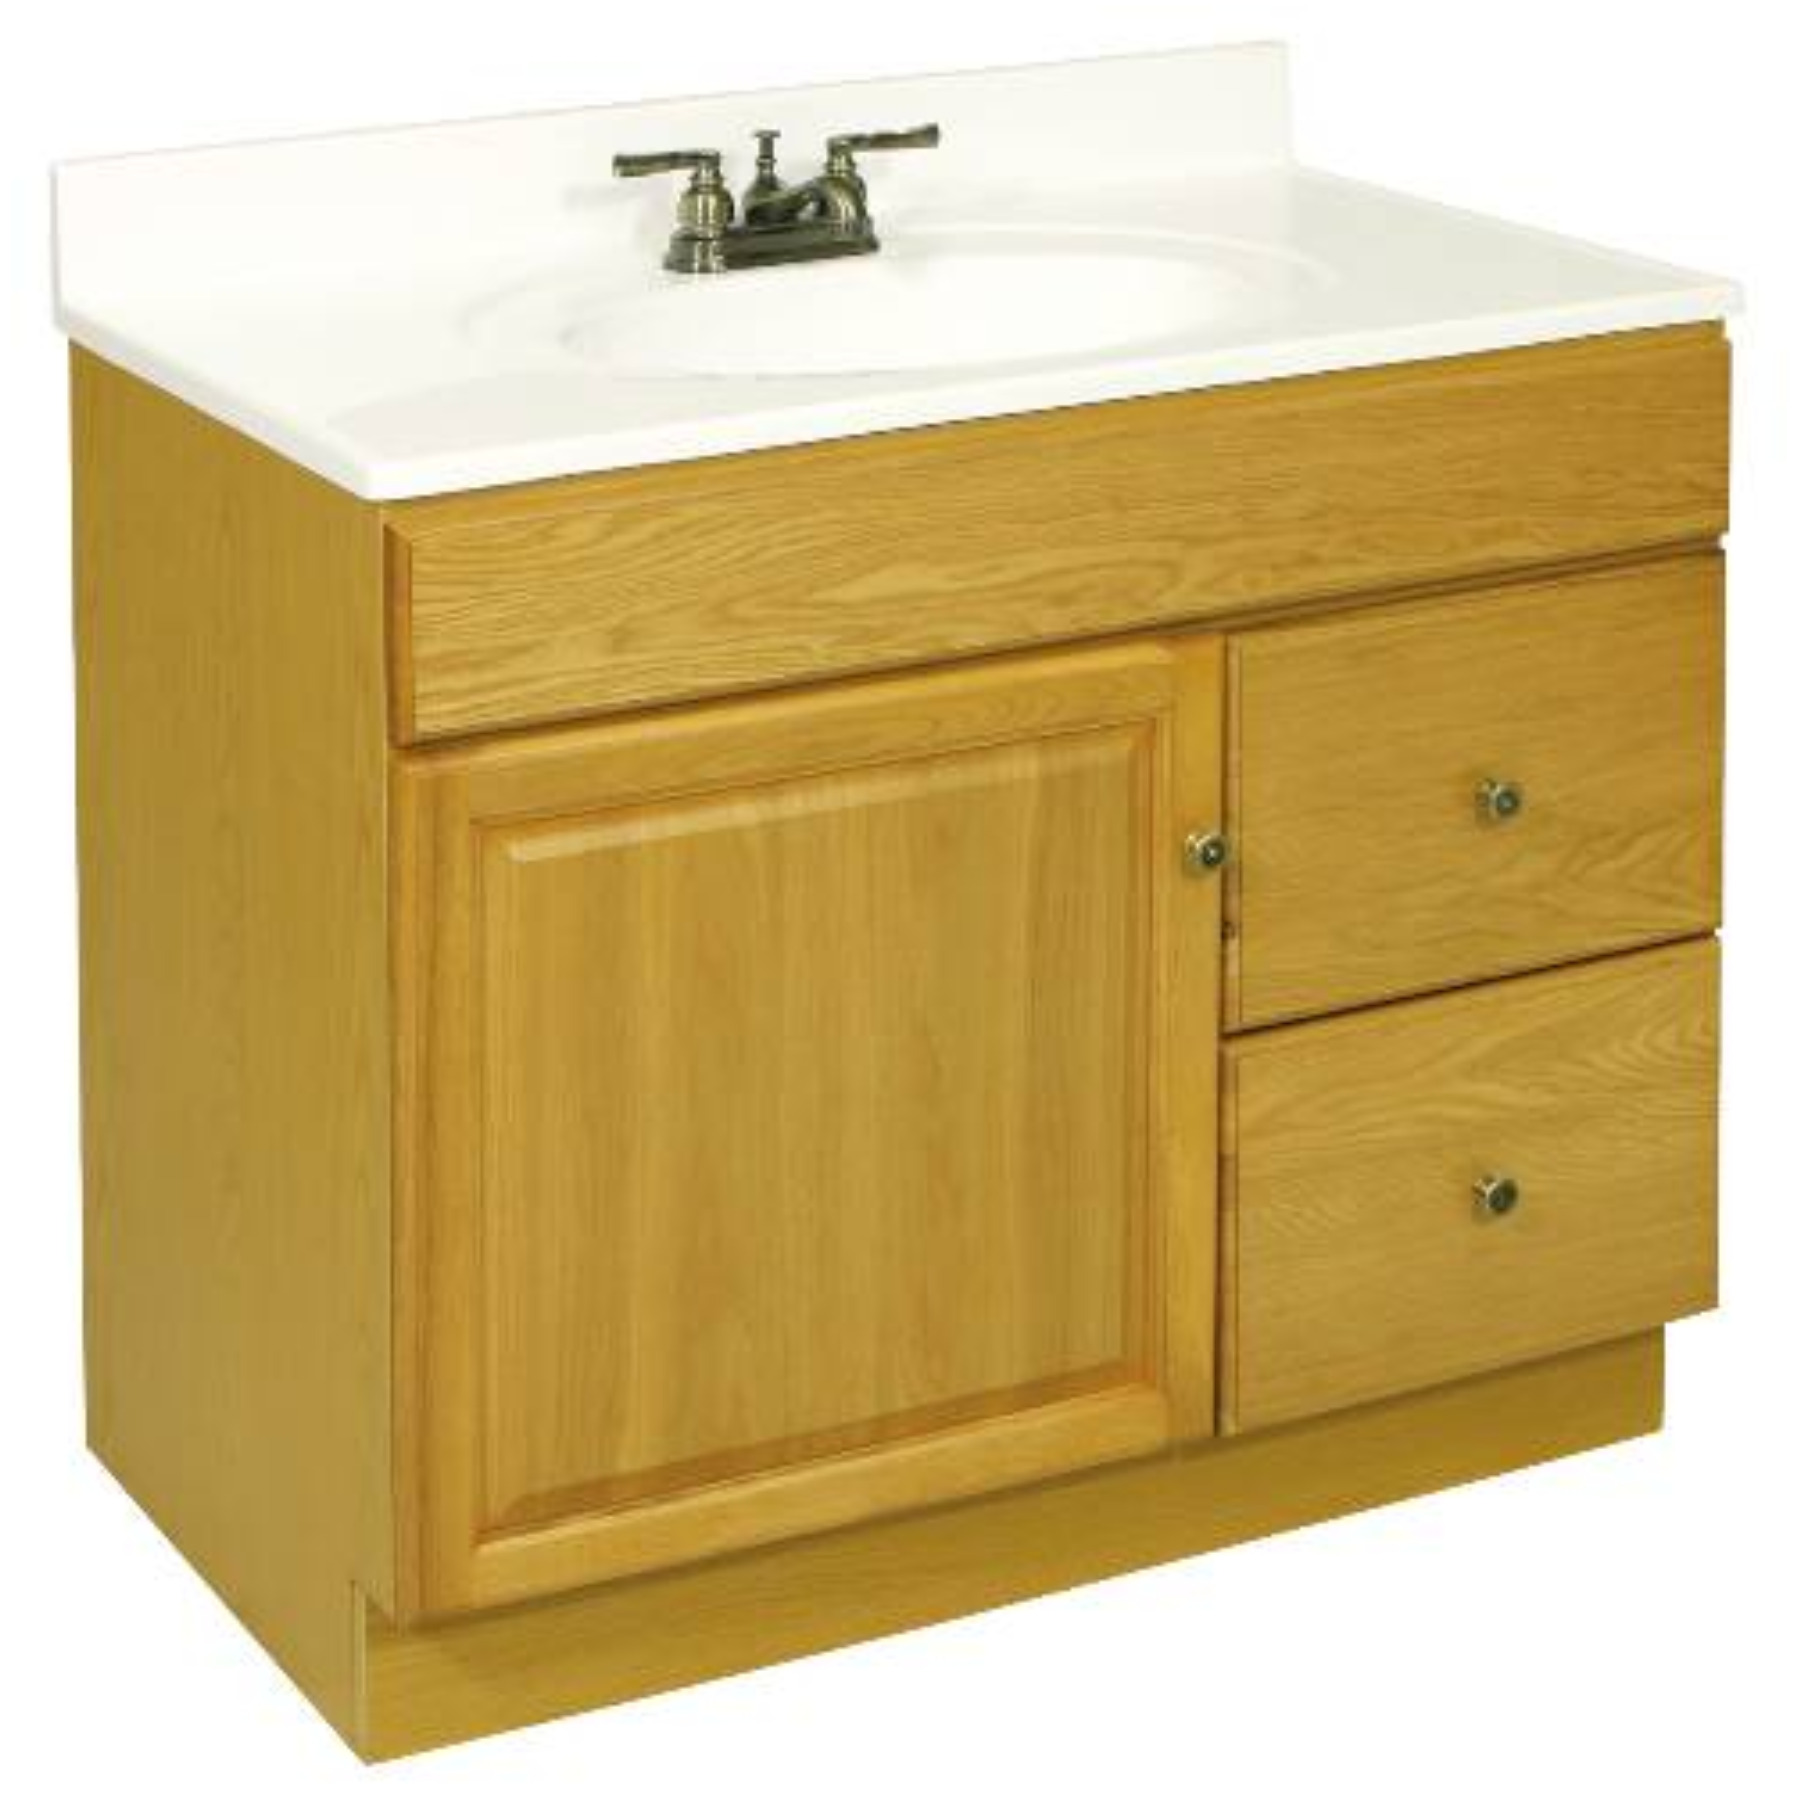 "36"" x 21.5"" Claremont Bathroom Vanity Cabinet, Ready To Assemble, 1 Door, 2 Drawer, Honey Oak"